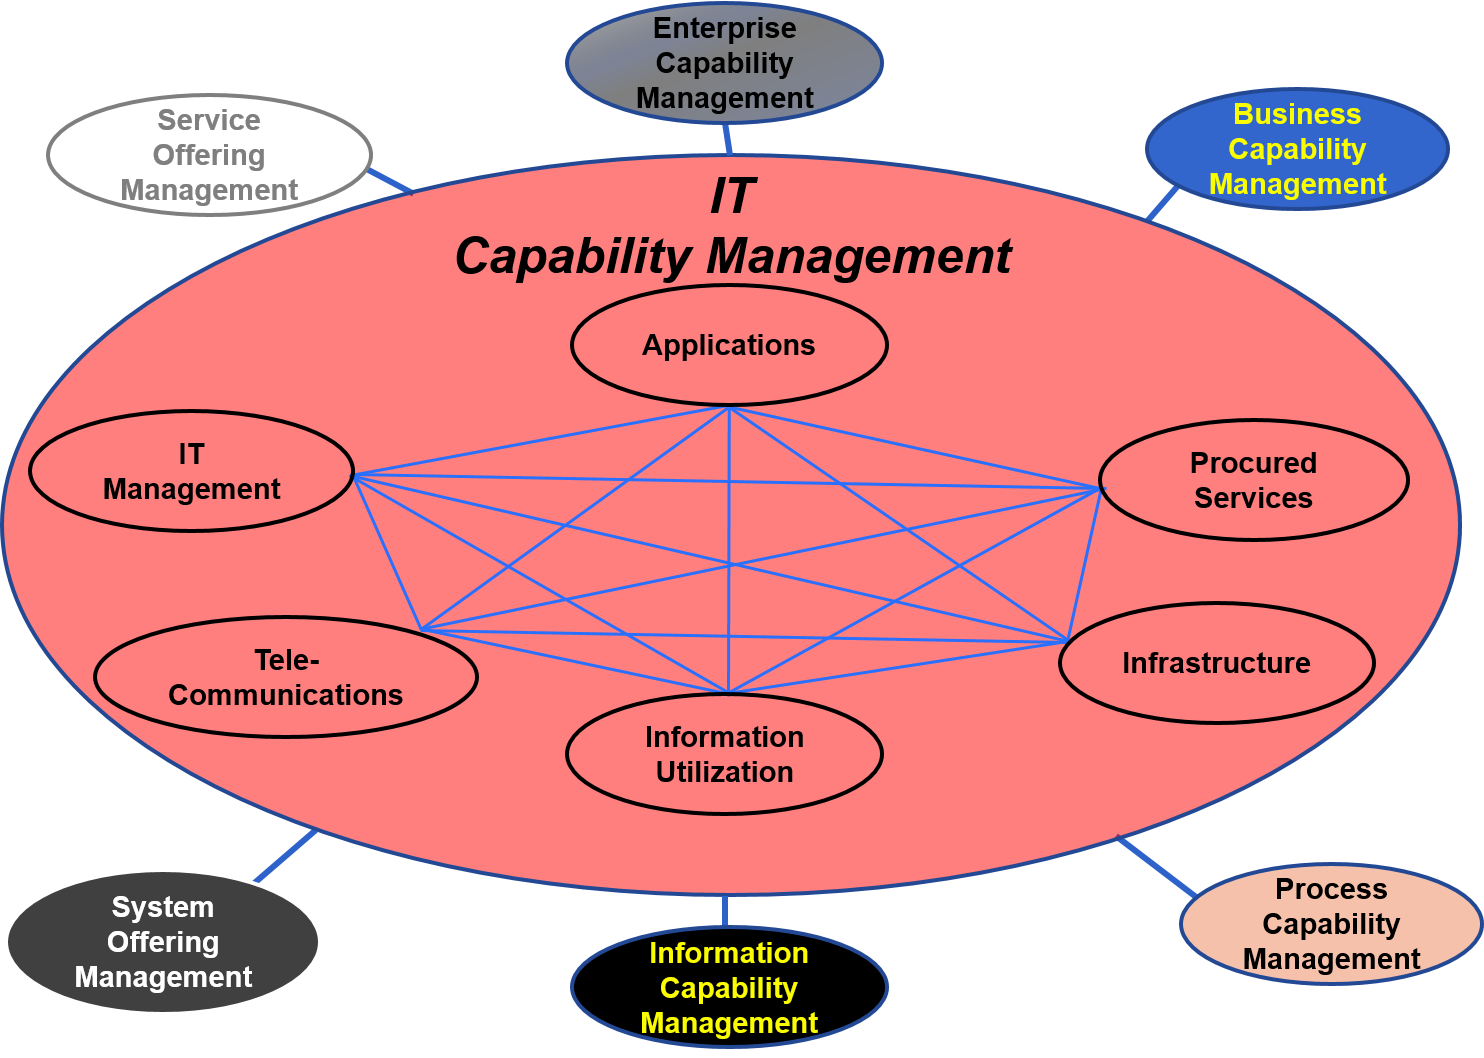 IT Capability Management